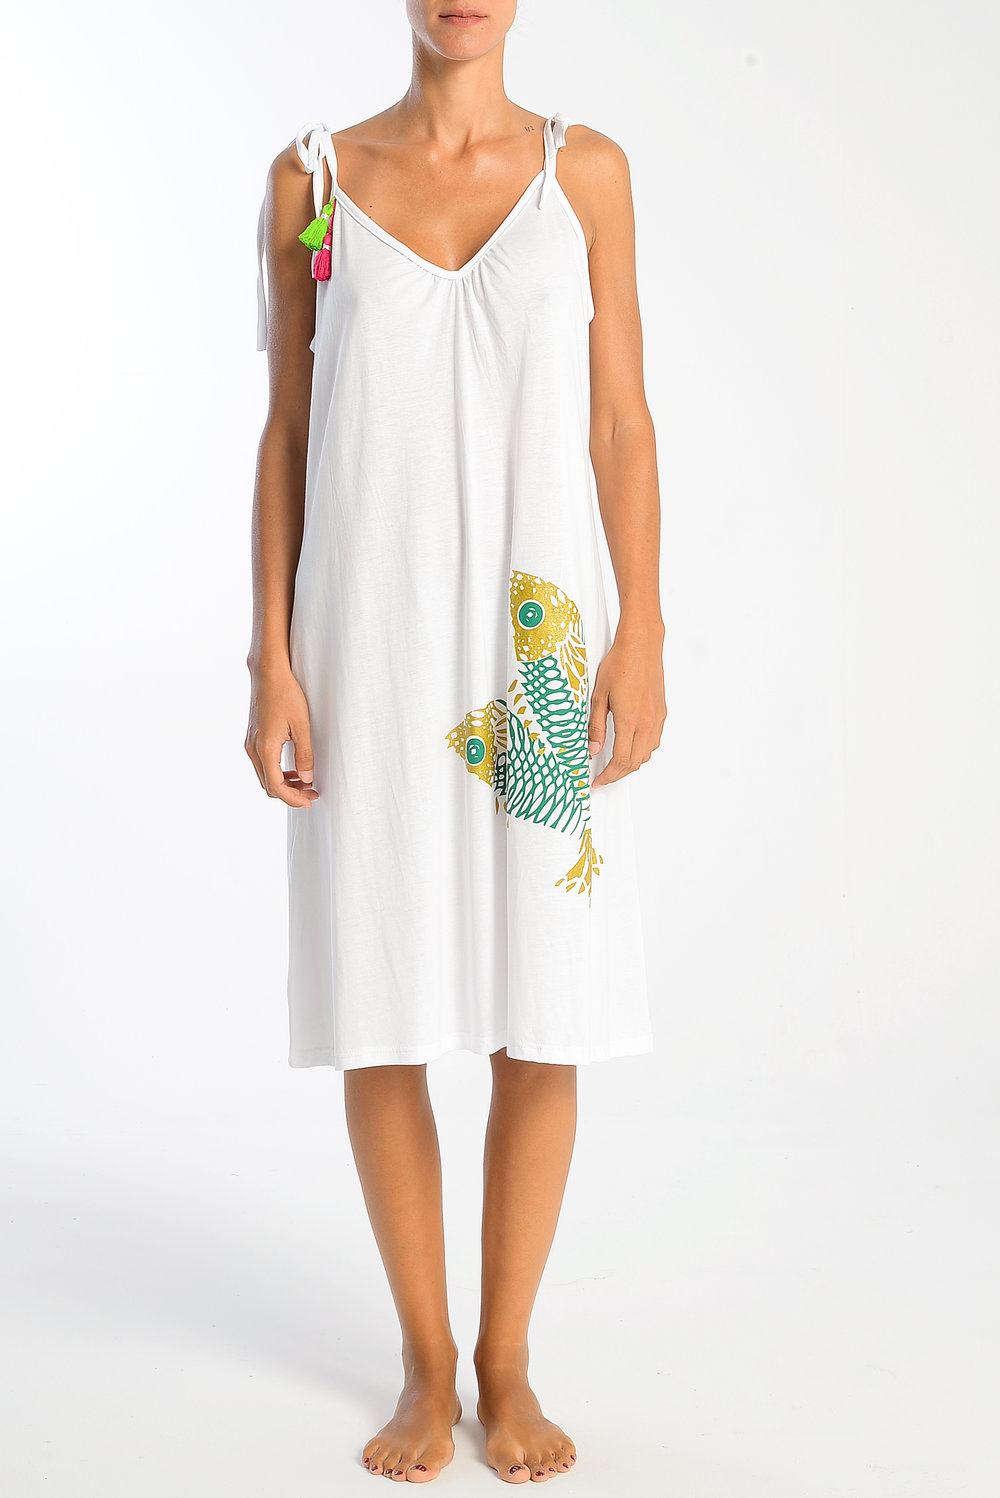 fish-short-dress-green-on-white-cotton-front.jpg